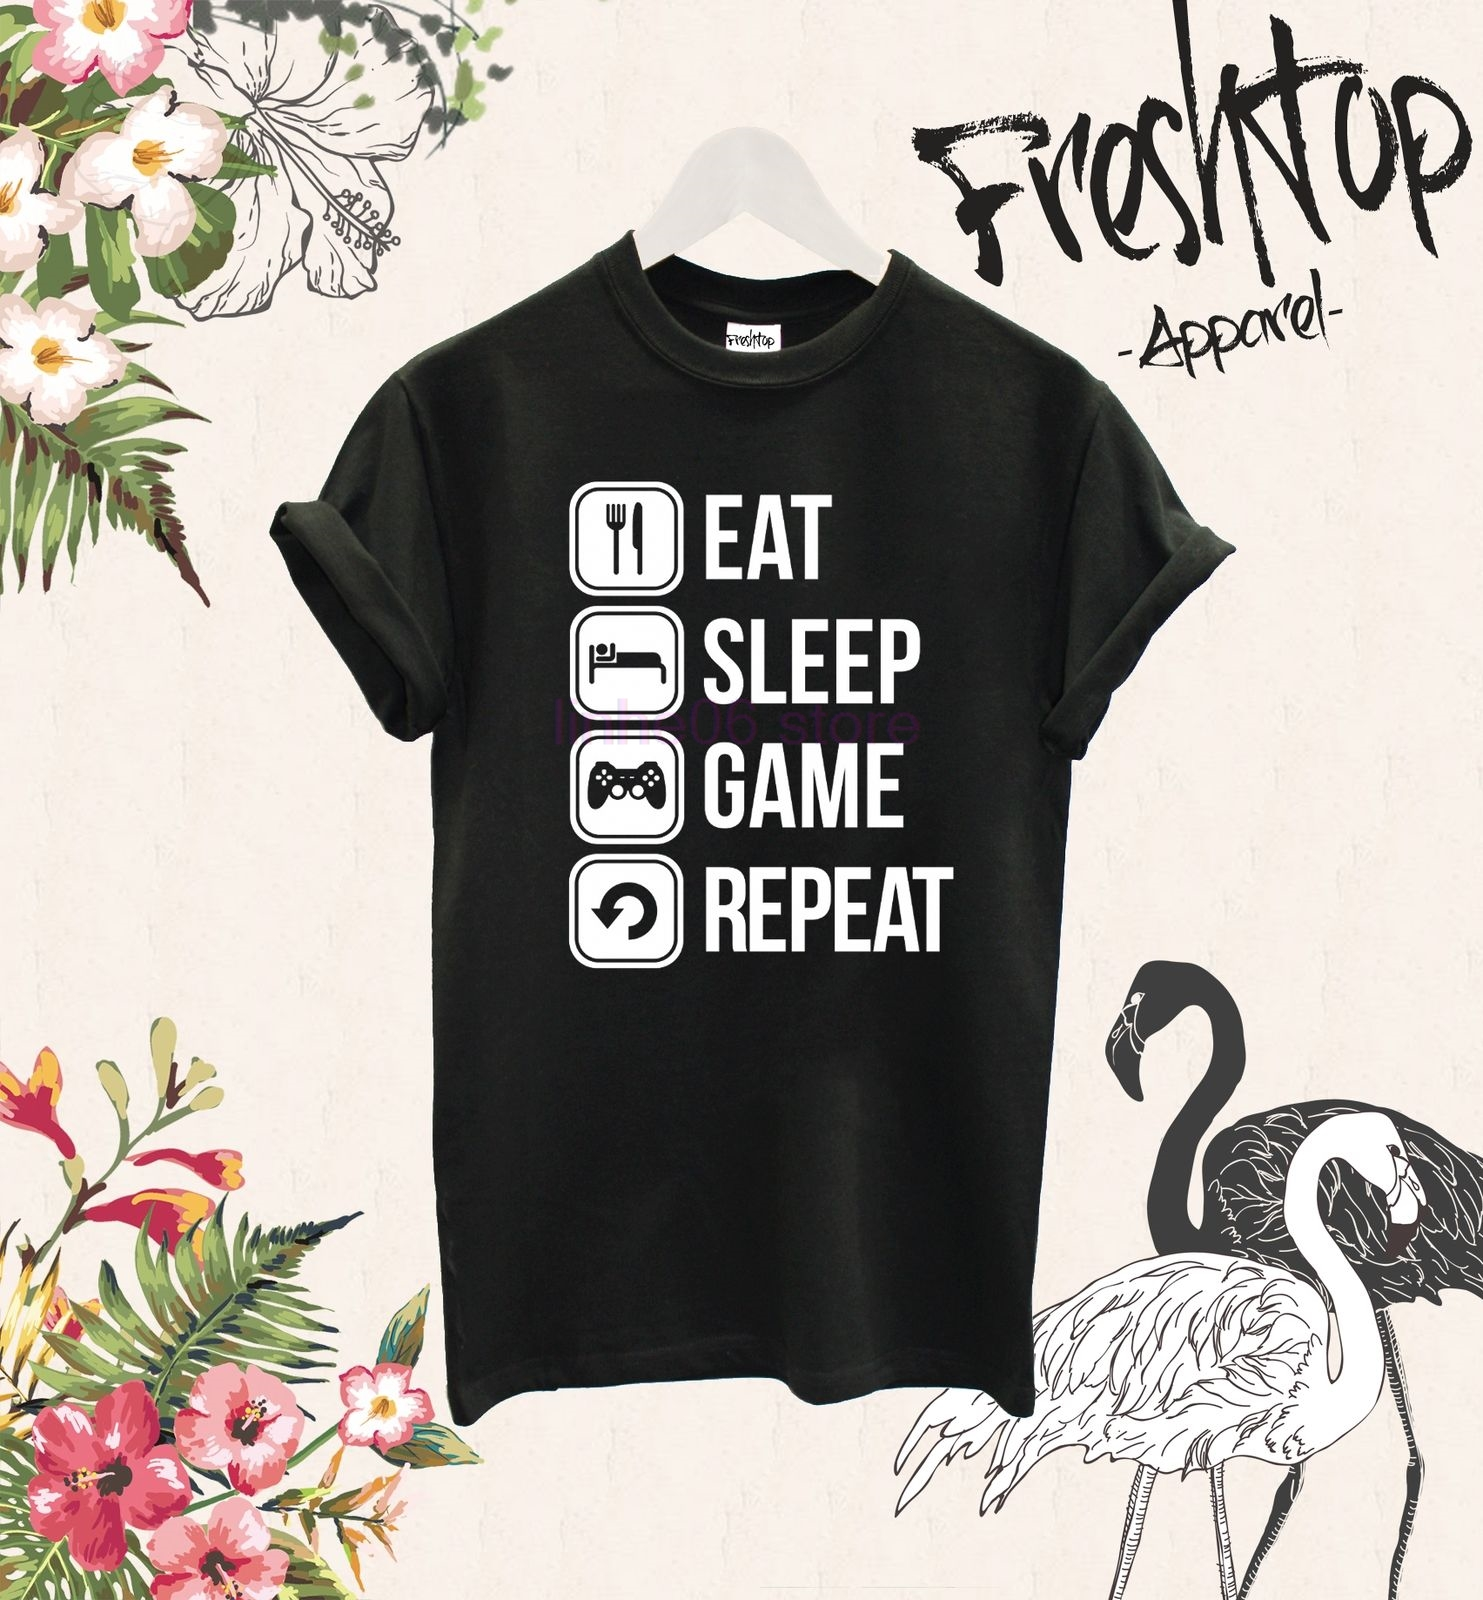 Eat Sleep Game Repeat T Shirt Twitch Youtube Gamer Play CS Go MMO RPG Gameboy Summer 2019 Short Sleeve Plus Size T-shirt image